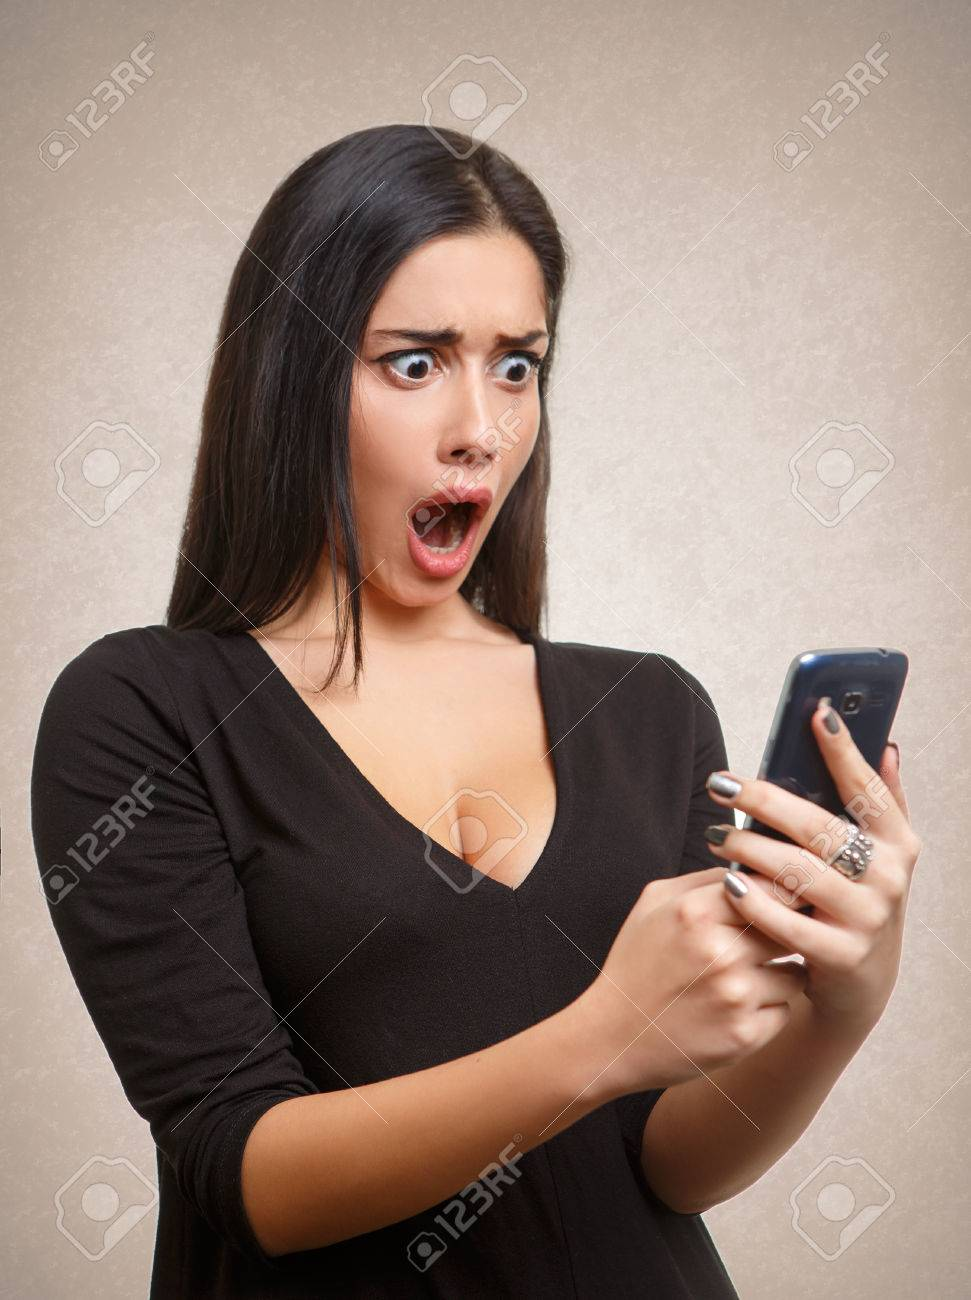 Young woman shocked by mobile phone news or message Stock Photo - 55148569